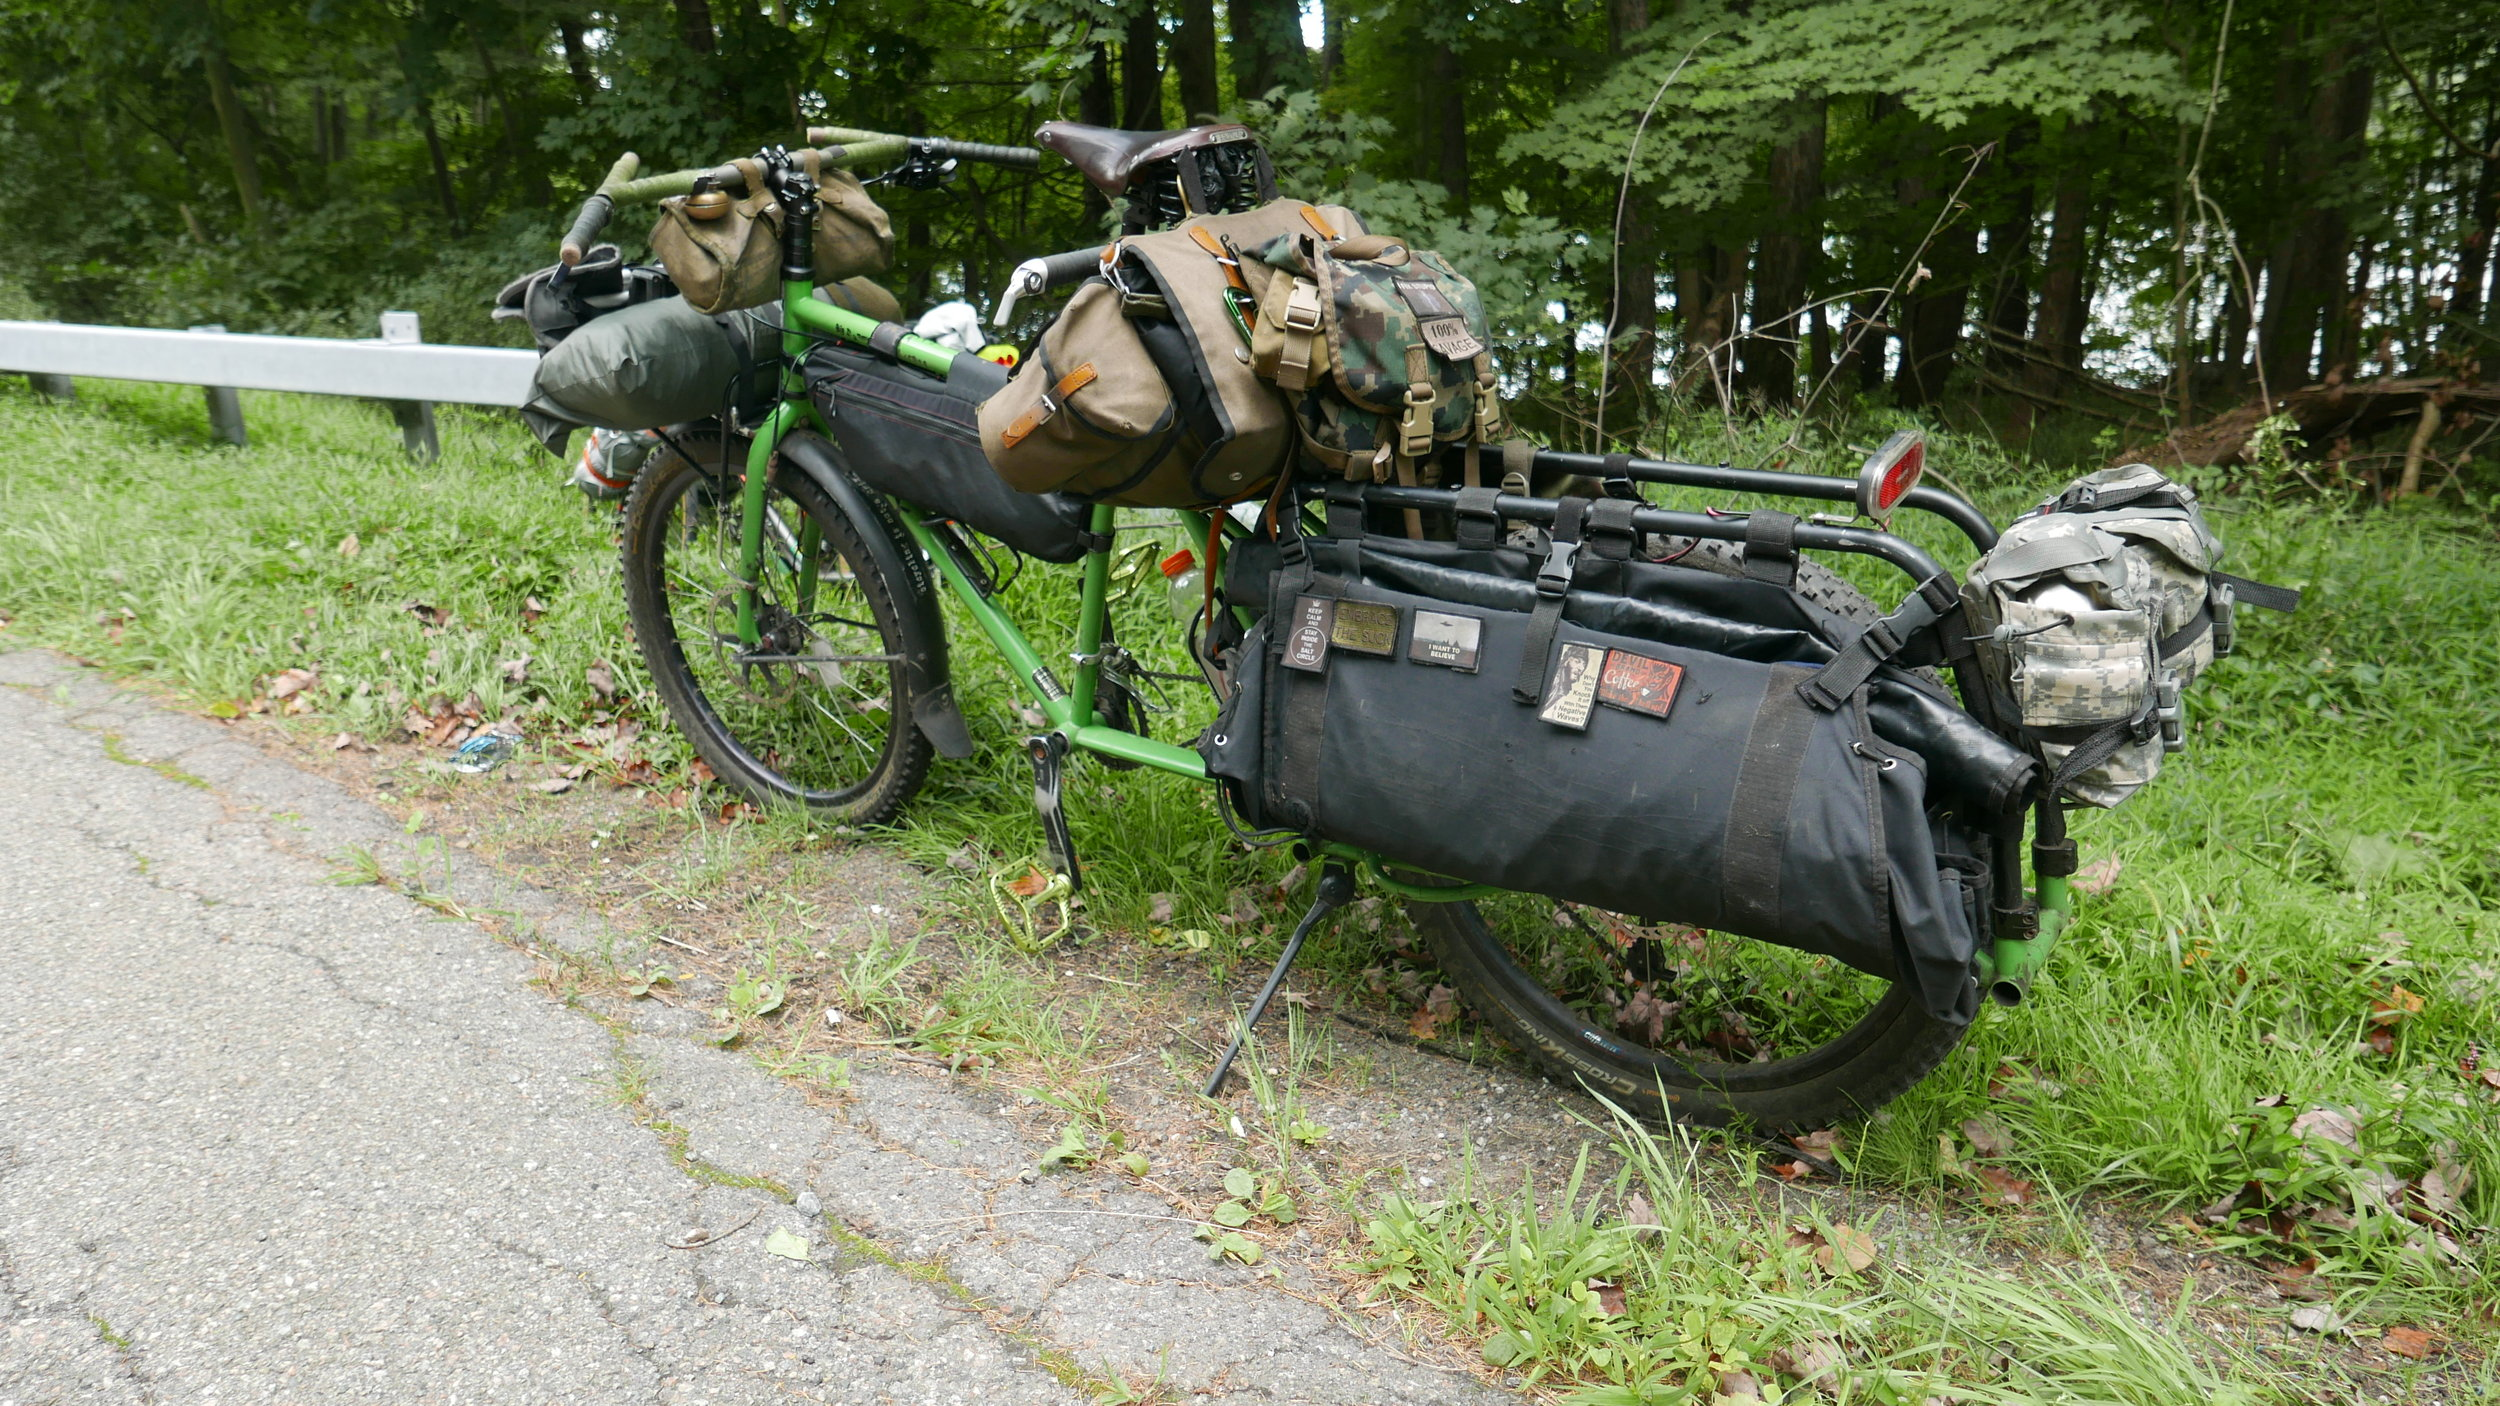 The best use of a Surly Big Dummy ever